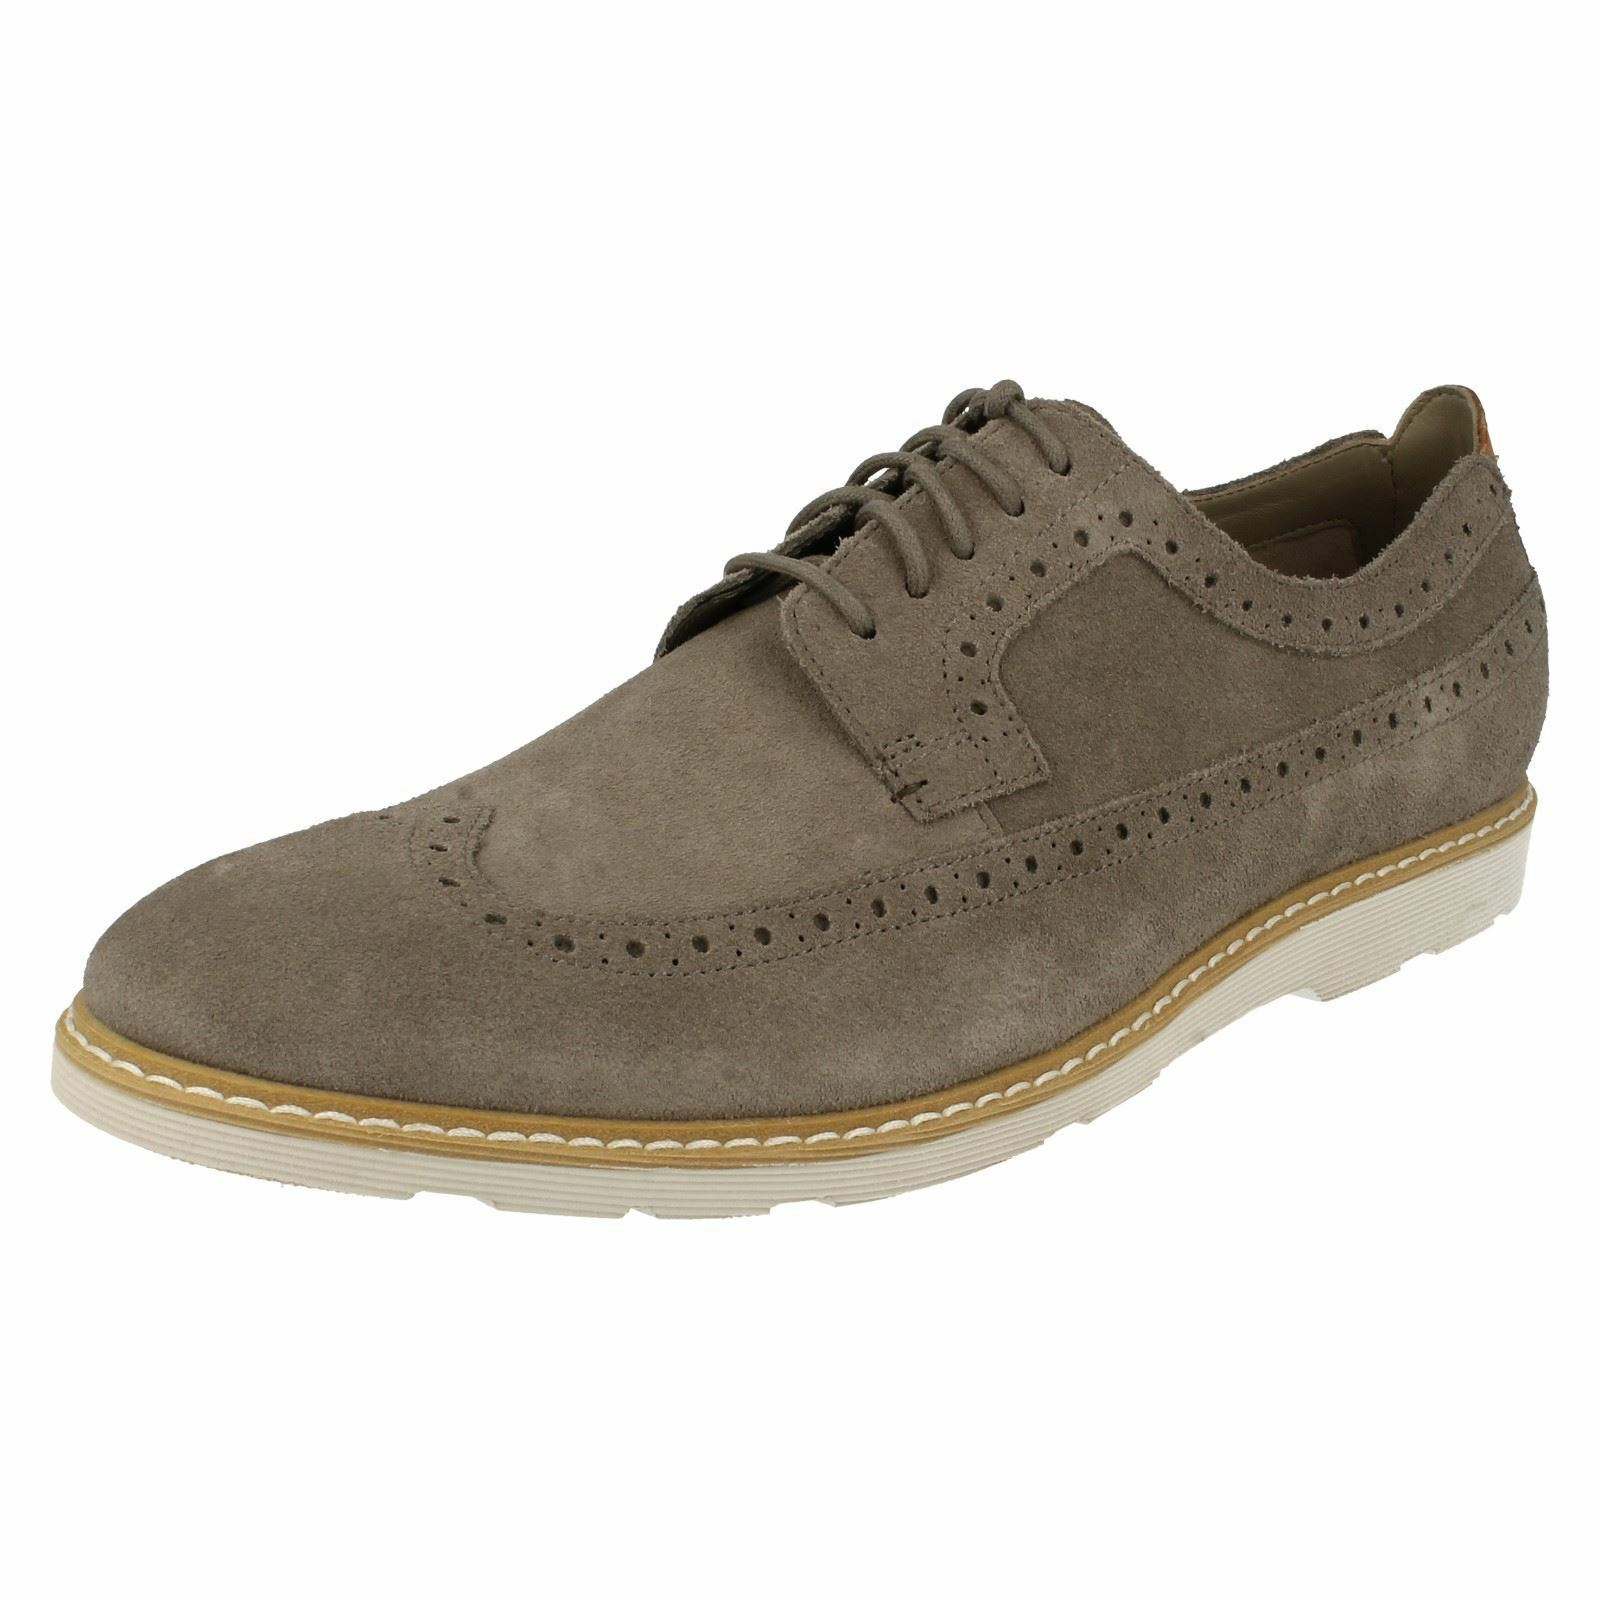 039; Dress& 039;Gambeson & Brogues Casual Smart Clarks Mens ...